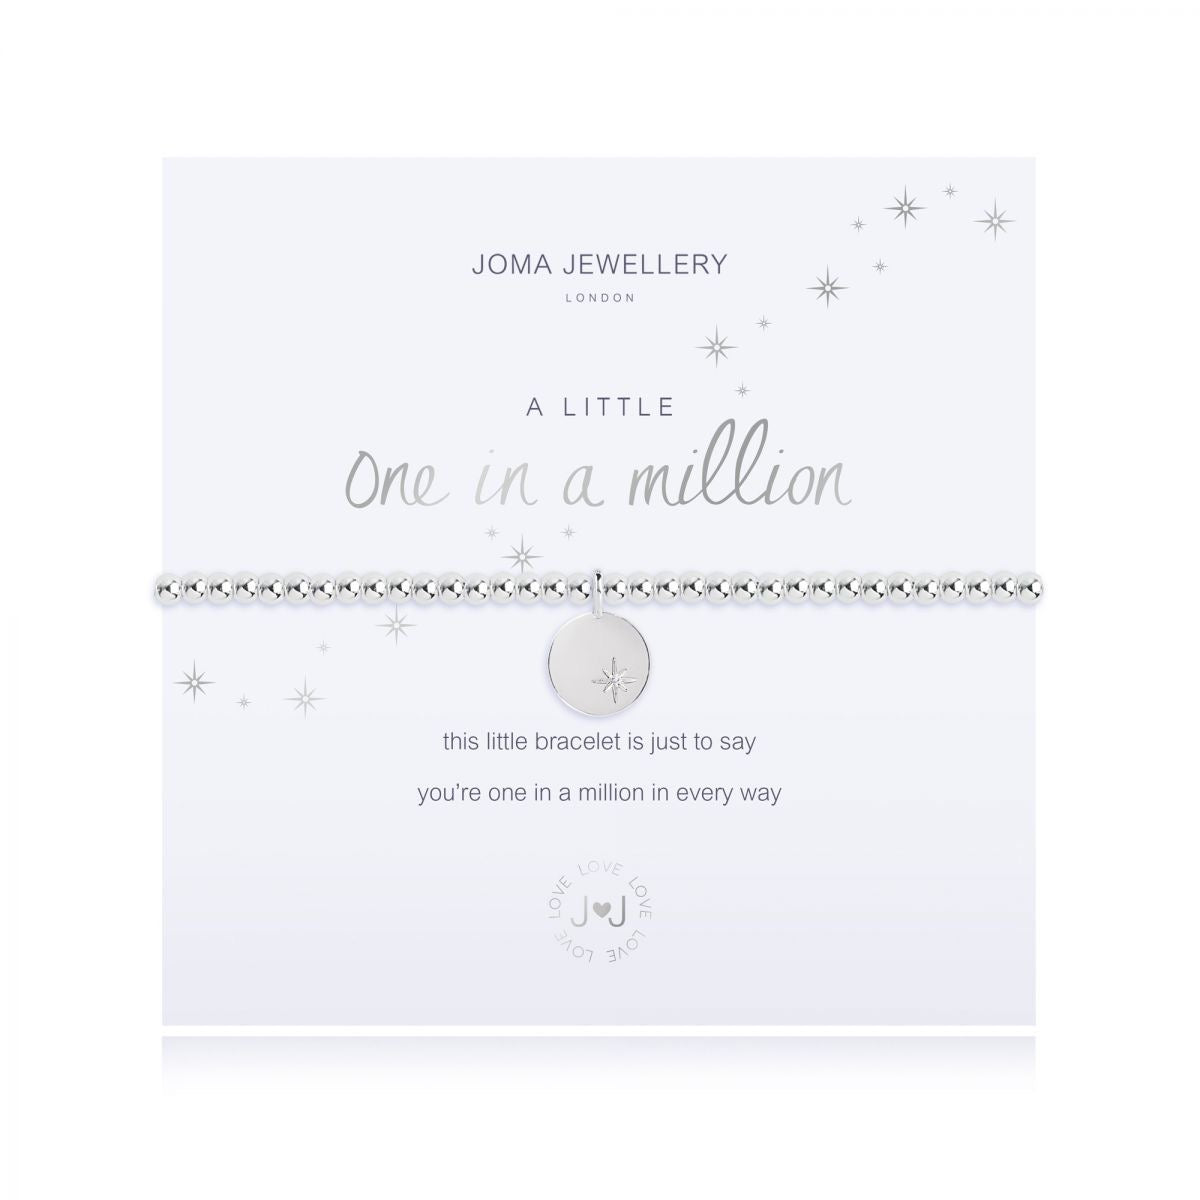 Joma Jewellery 'A Little' One in a Million